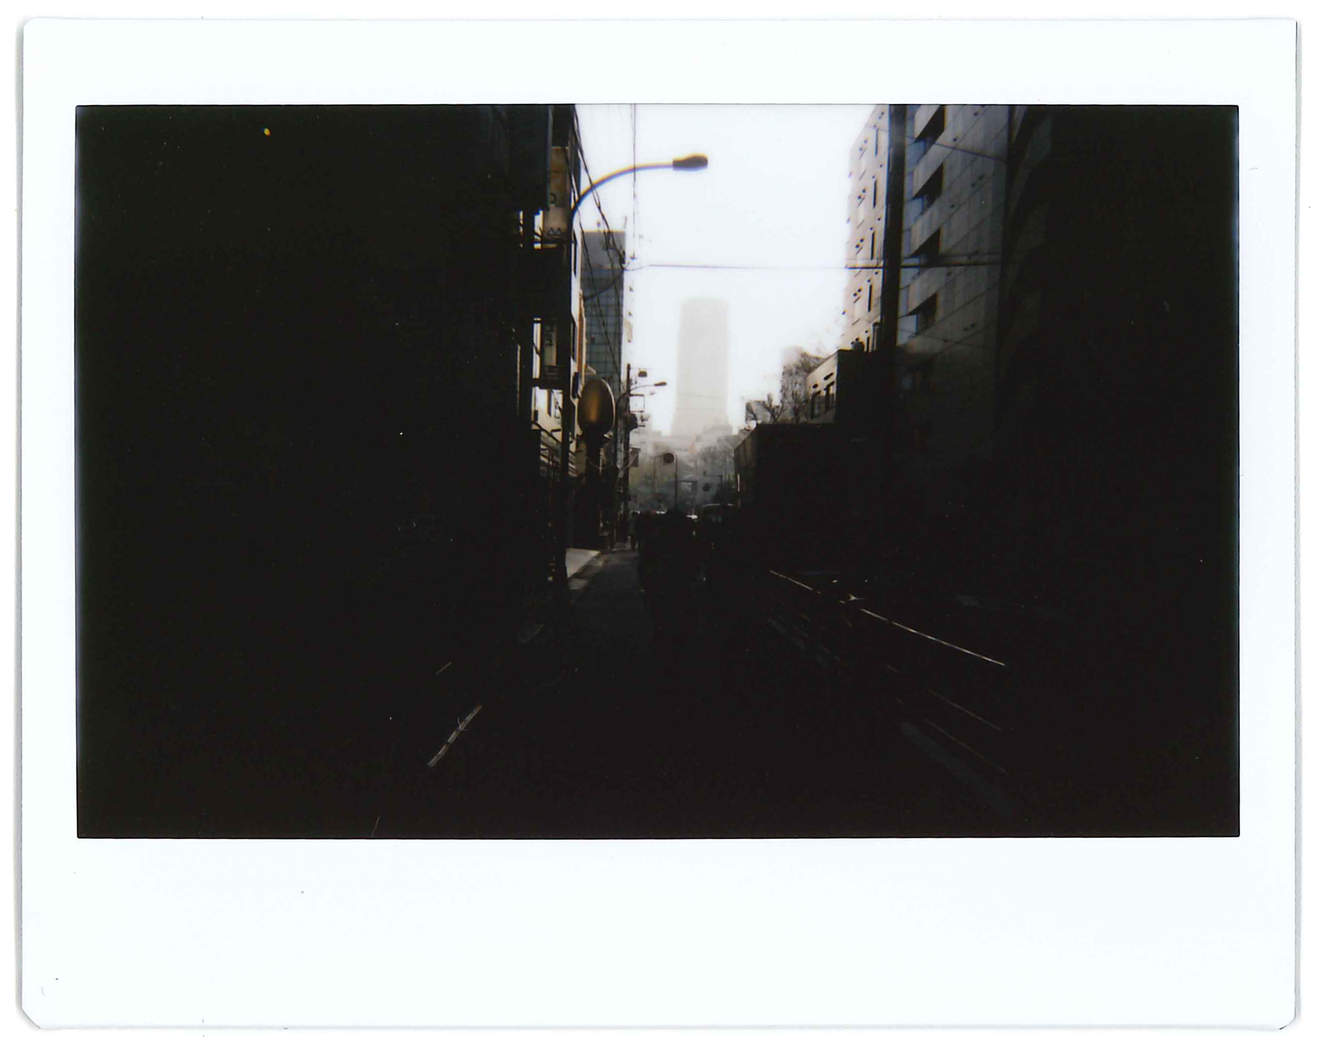 "Instant photo for Day 75 of ""A Year in an Instant"" by Nuno Coelho Santos"